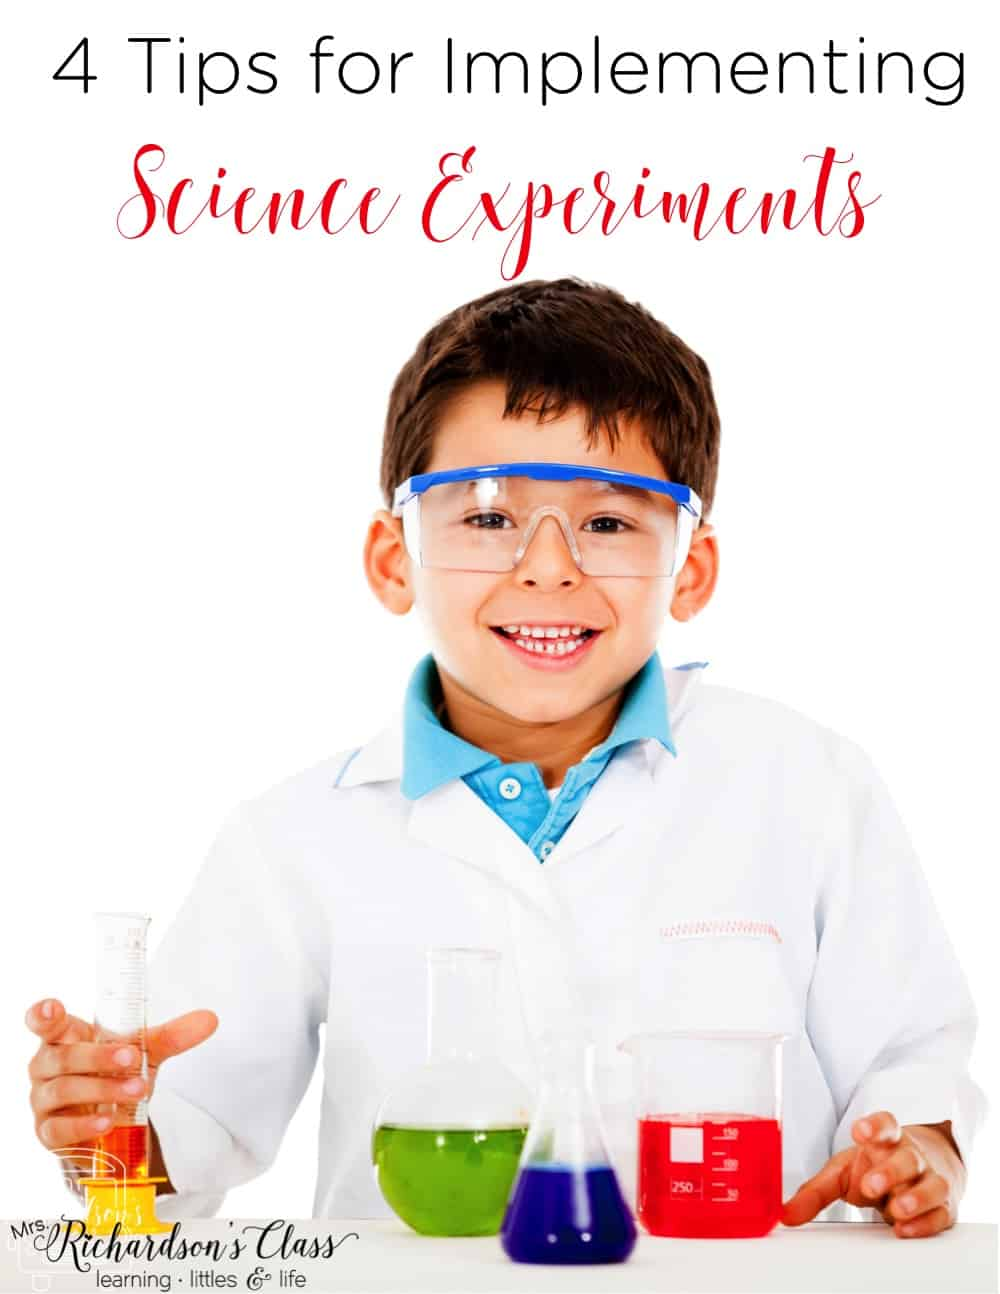 Implementing science experiments doesn't have to be hard. These tips are great reminders for science experiments with kindergarten and first graders!